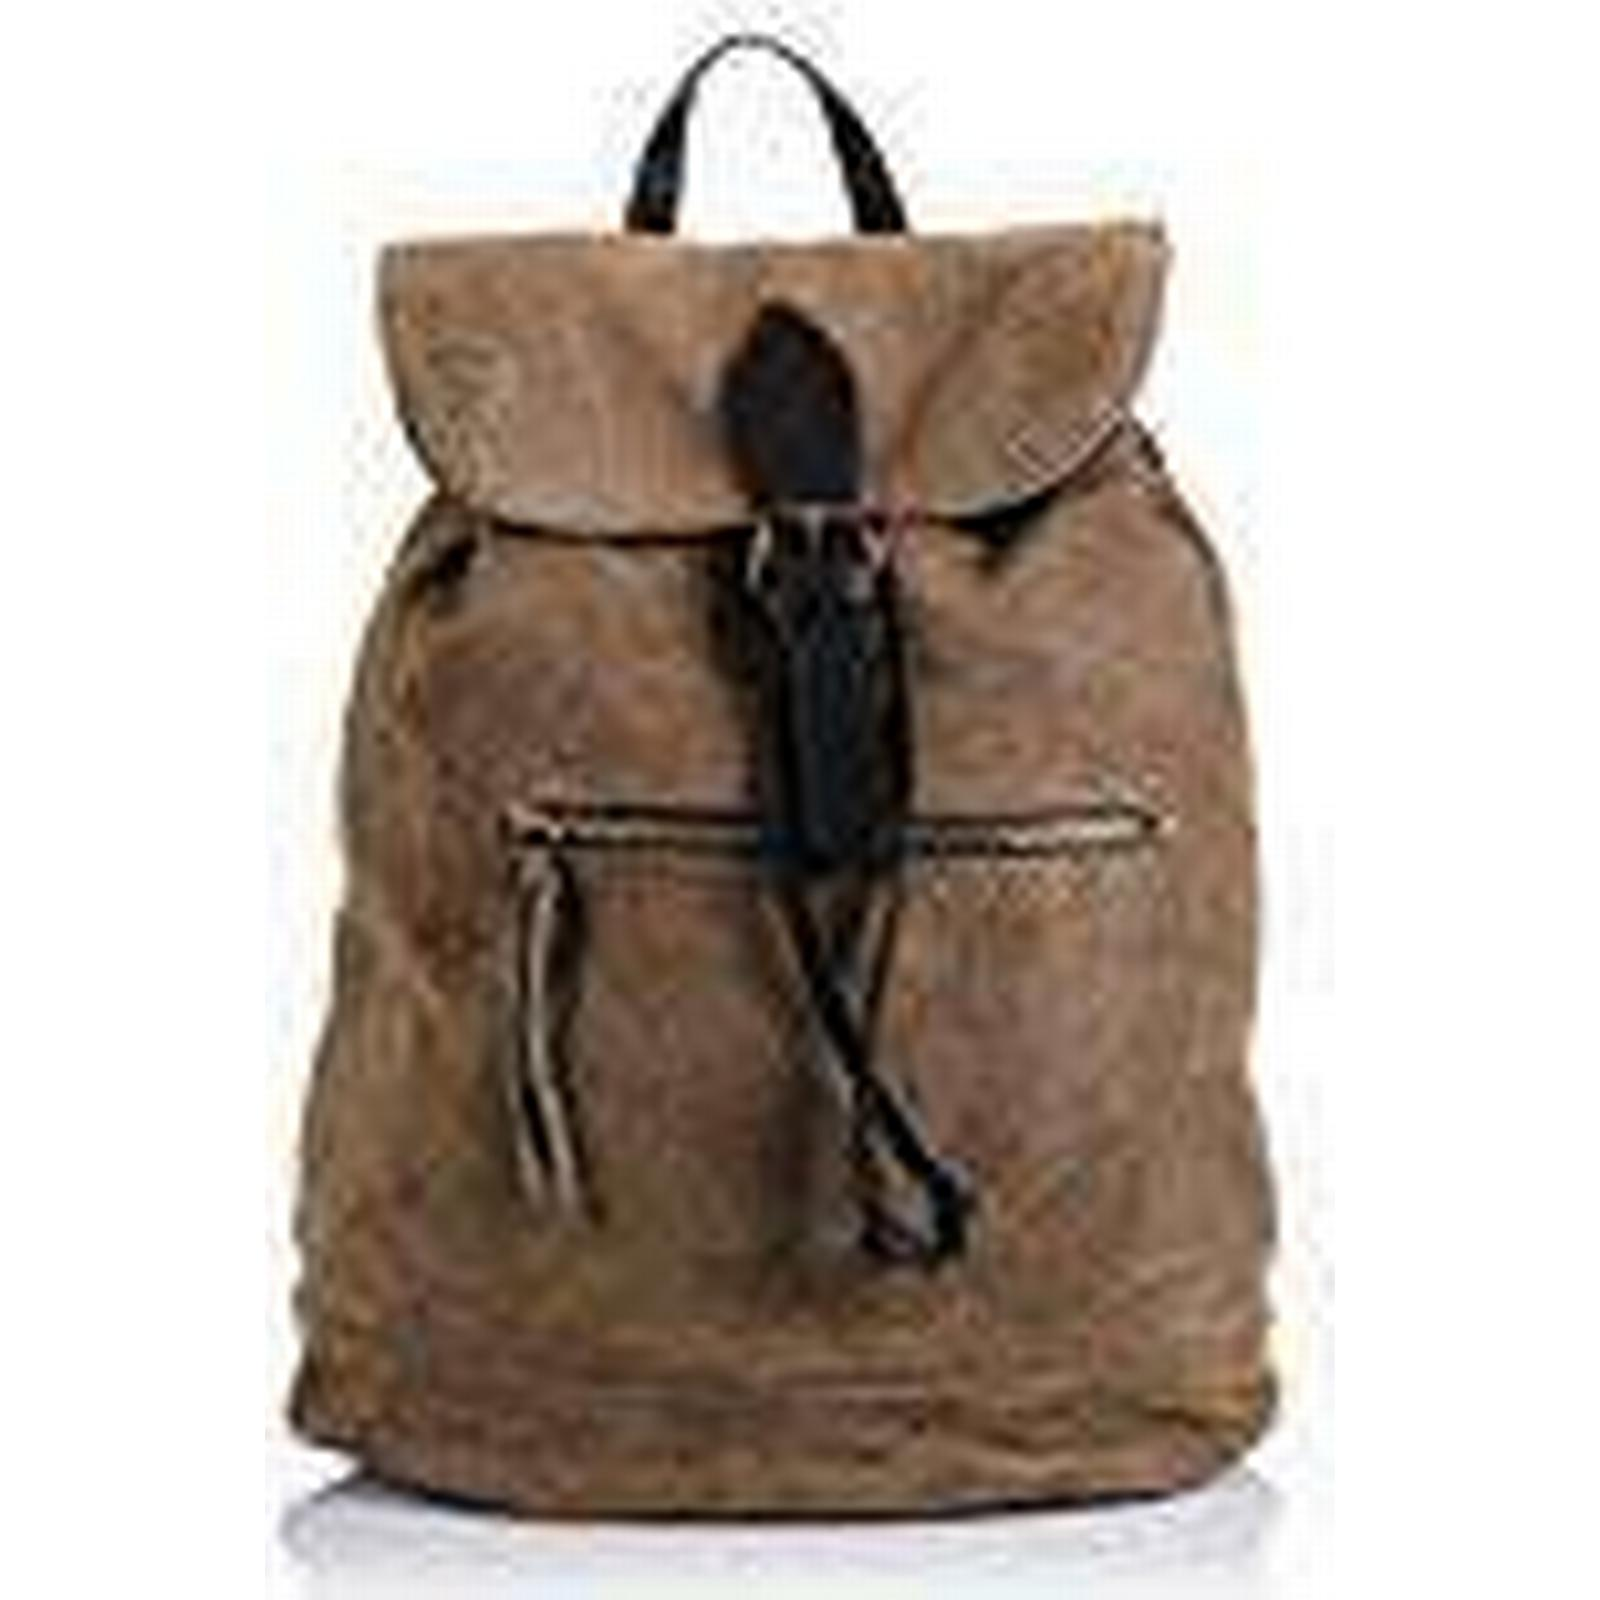 FIRENZE ARTEGIANI Women's Backpack Taupe Taupe Taupe 2f47c1